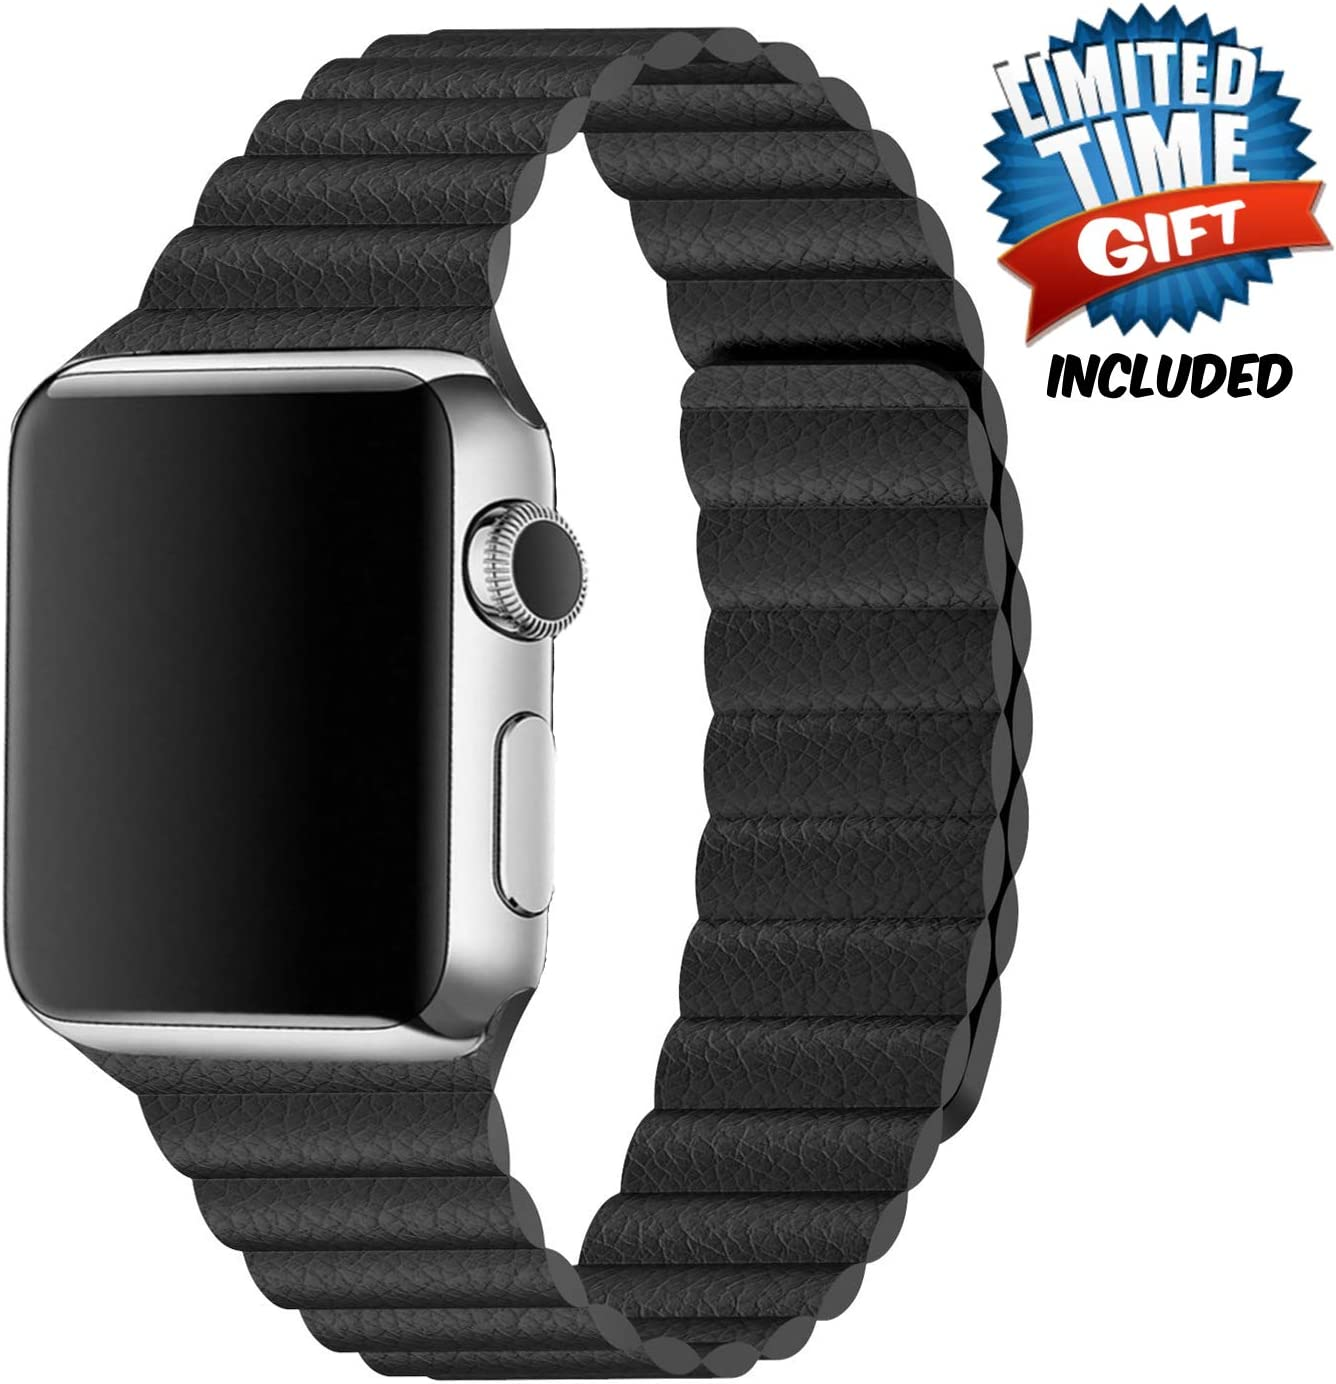 Inno-Huntz Leather Band Compatible with Apple Watch Band 38mm 40mm Replacement 2 Straps for Watch Series 4 3 2 1 Strong Magnetic Closure Wristband for Men Women Black